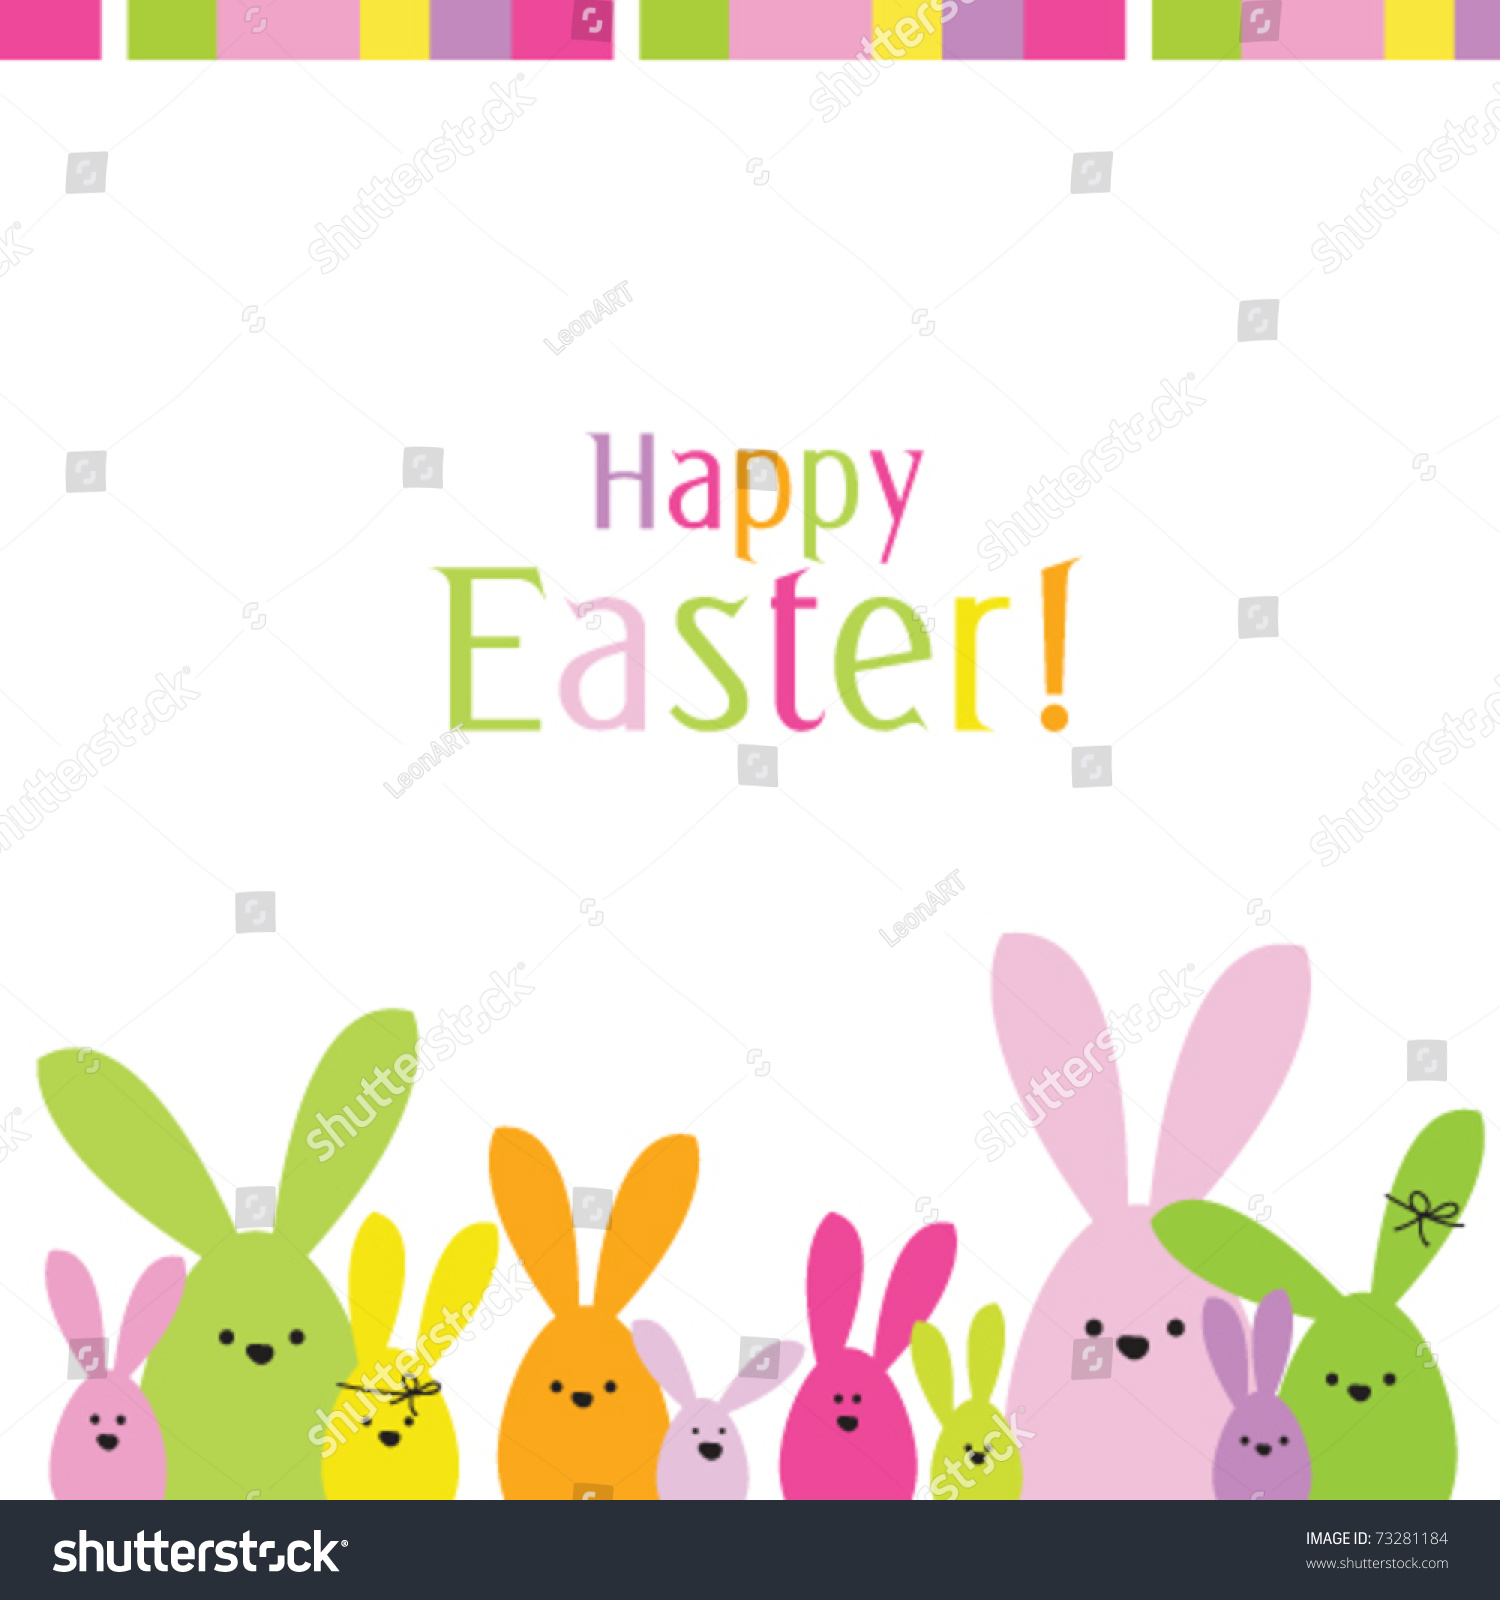 Easter Bunny Easter Card Copy Space Vector 73281184 – Easter Card